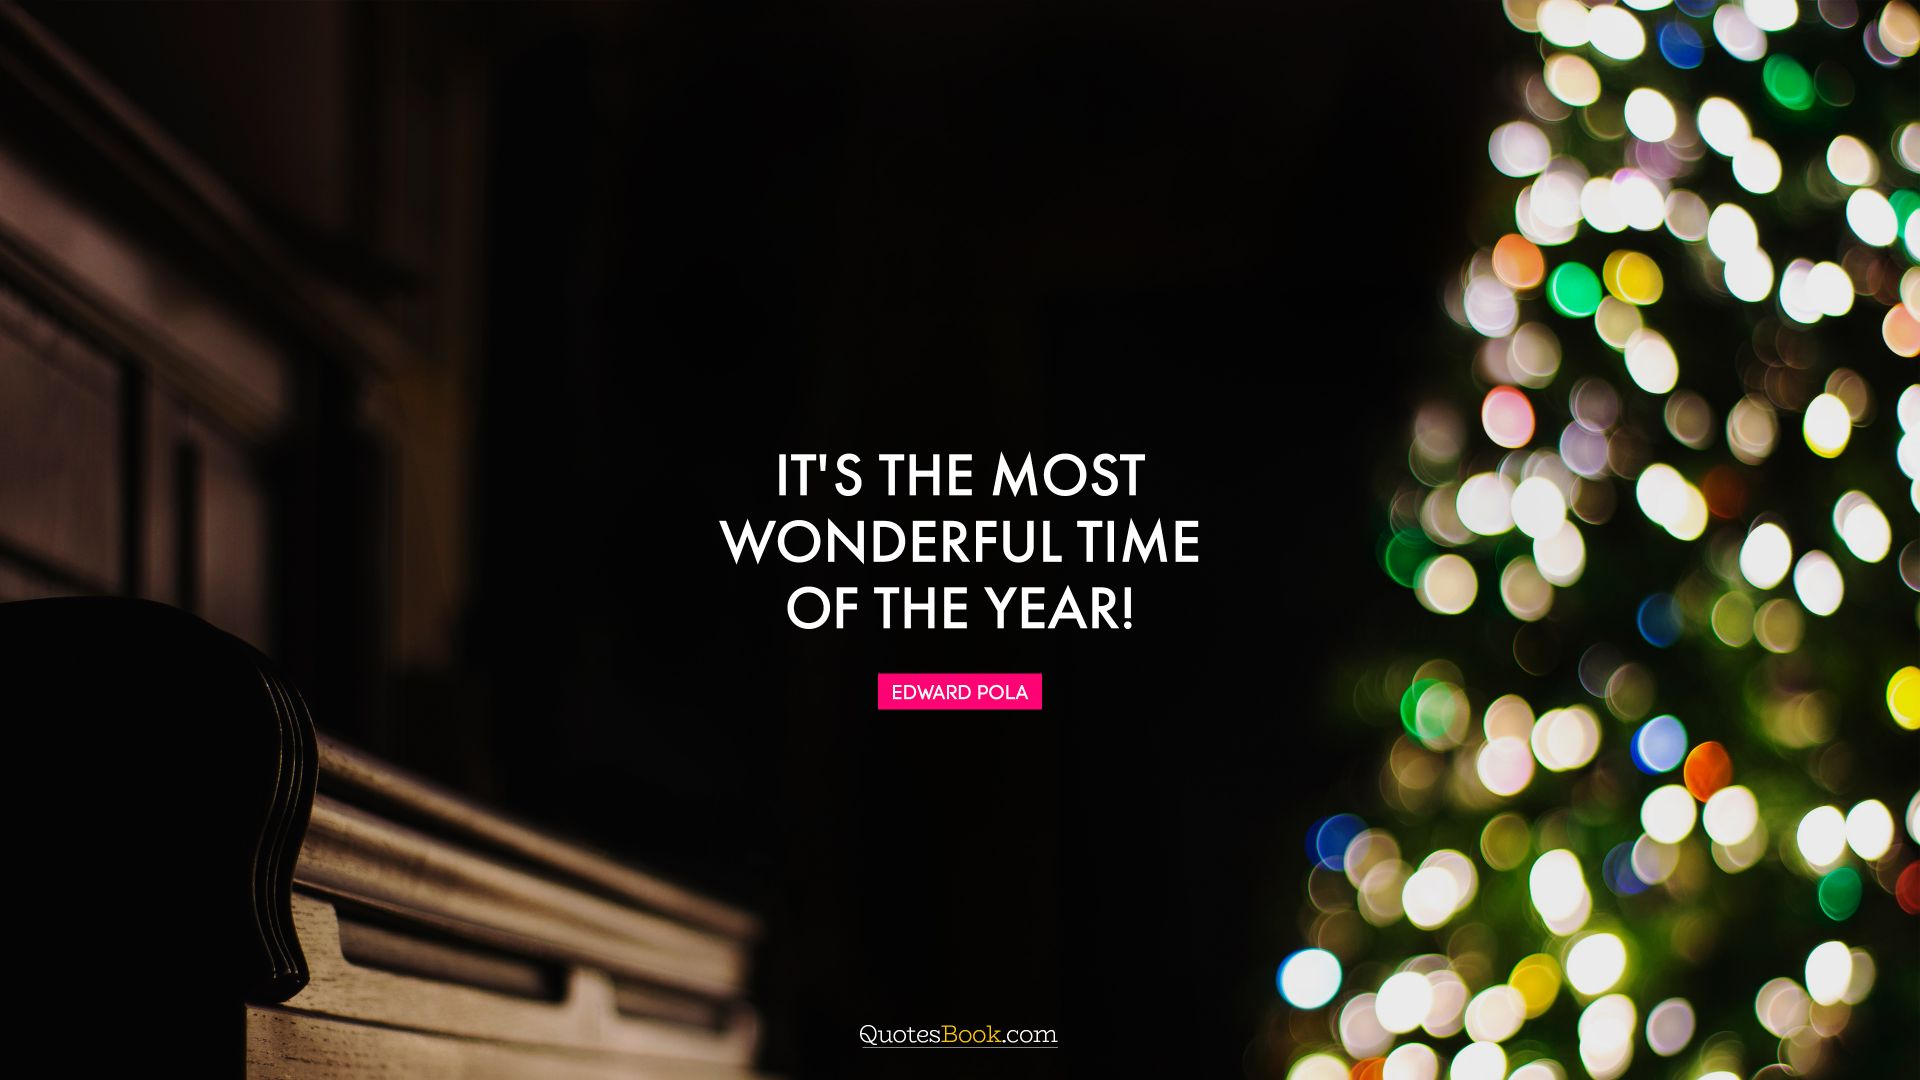 It's the most wonderful time of the year!. - Quote by Edward Pola